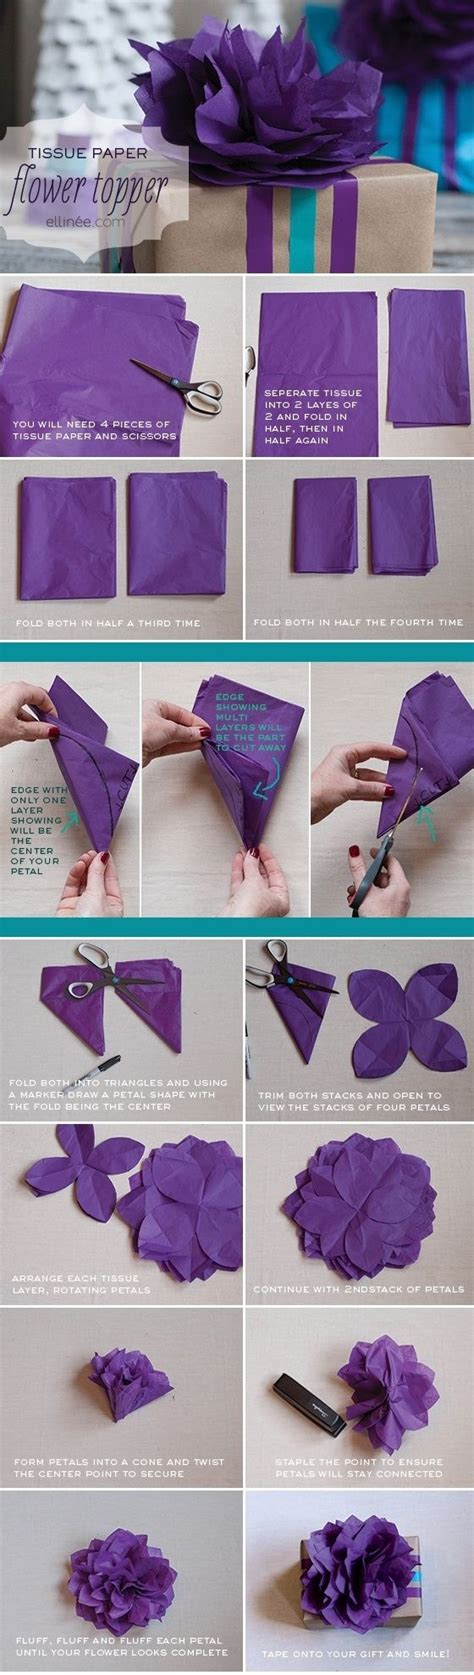 diy paper flower crafts diy tissue paper flower pictures photos and images for